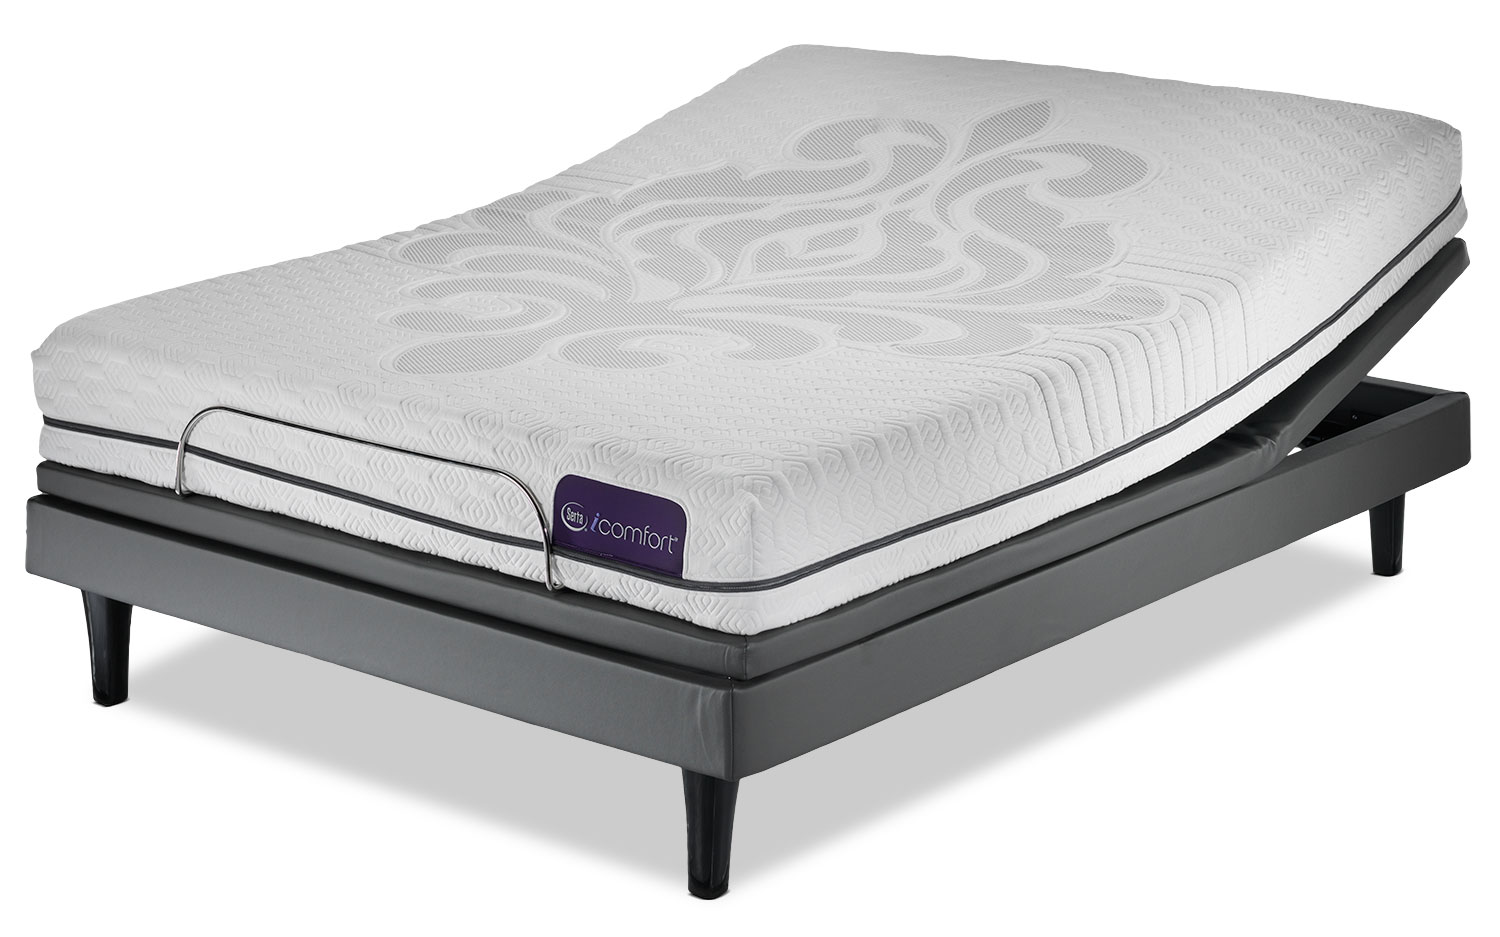 Serta iComfort Eco Levity Firm Queen Mattress and Motion Perfect III Complete Adjustable Base Set